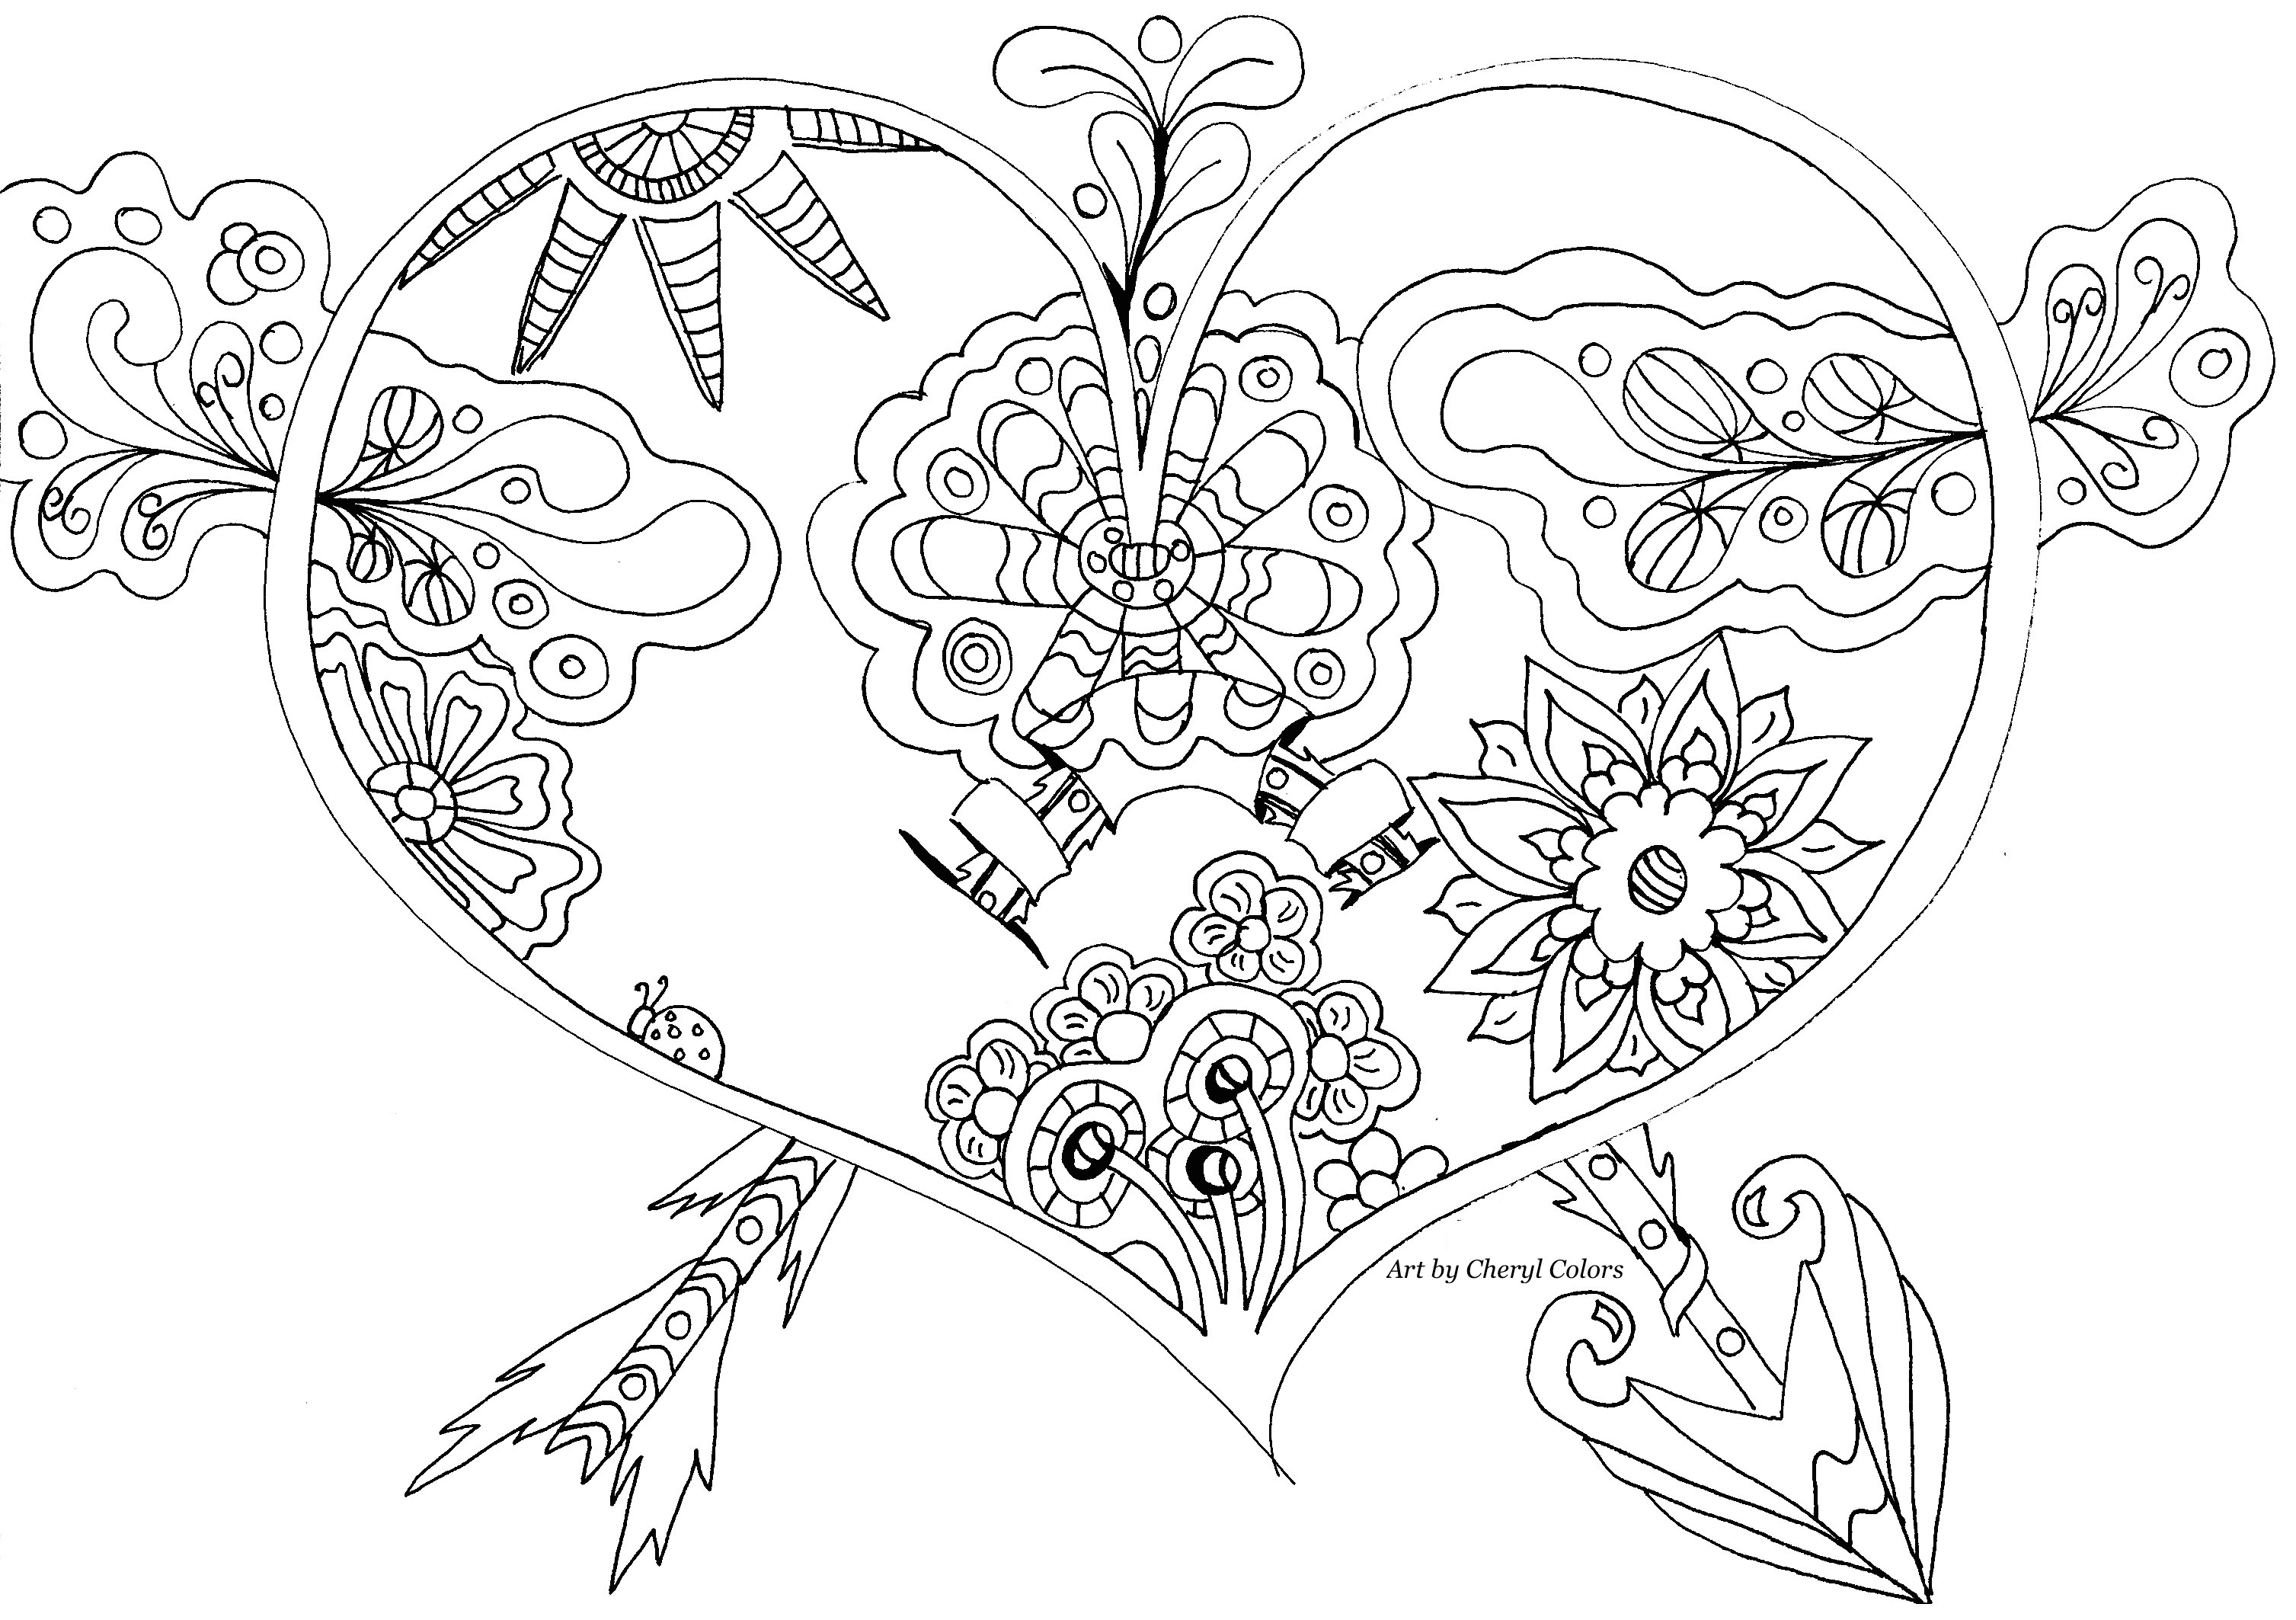 free printable coloring pages for adults fantasy coloring pages to download and print for free adults coloring free pages printable for